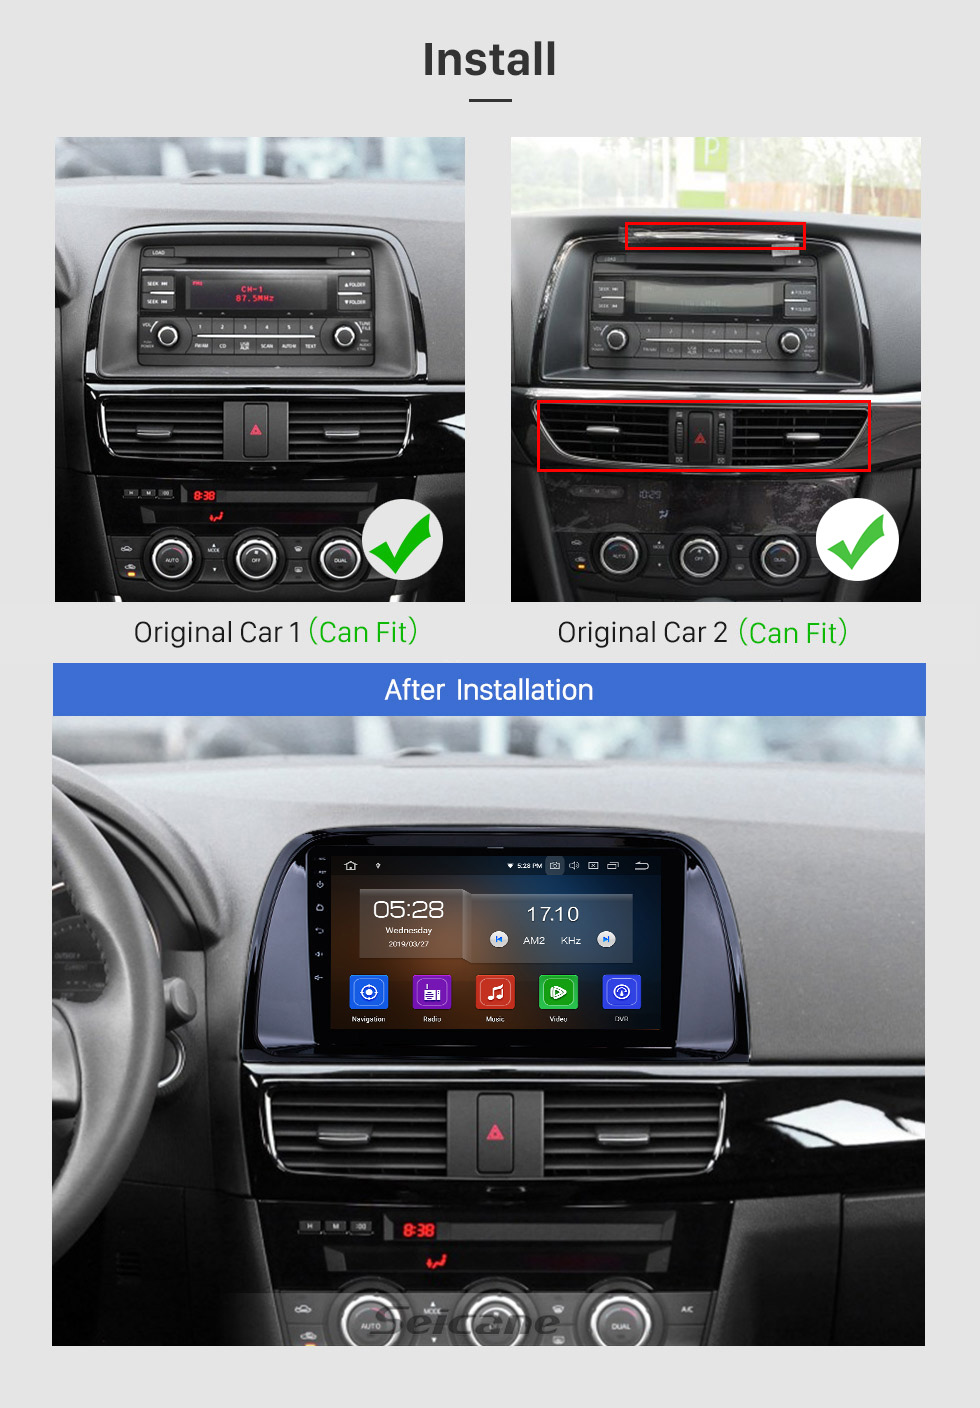 Seicane 2012-2015 Mazda CX-5 Full 1024*600 Touchscreen Android 10.0 GPS Navigation System with WIFI 4G Bluetooth Music USB OBD2 AUX Radio Backup Camera Steering Wheel Control